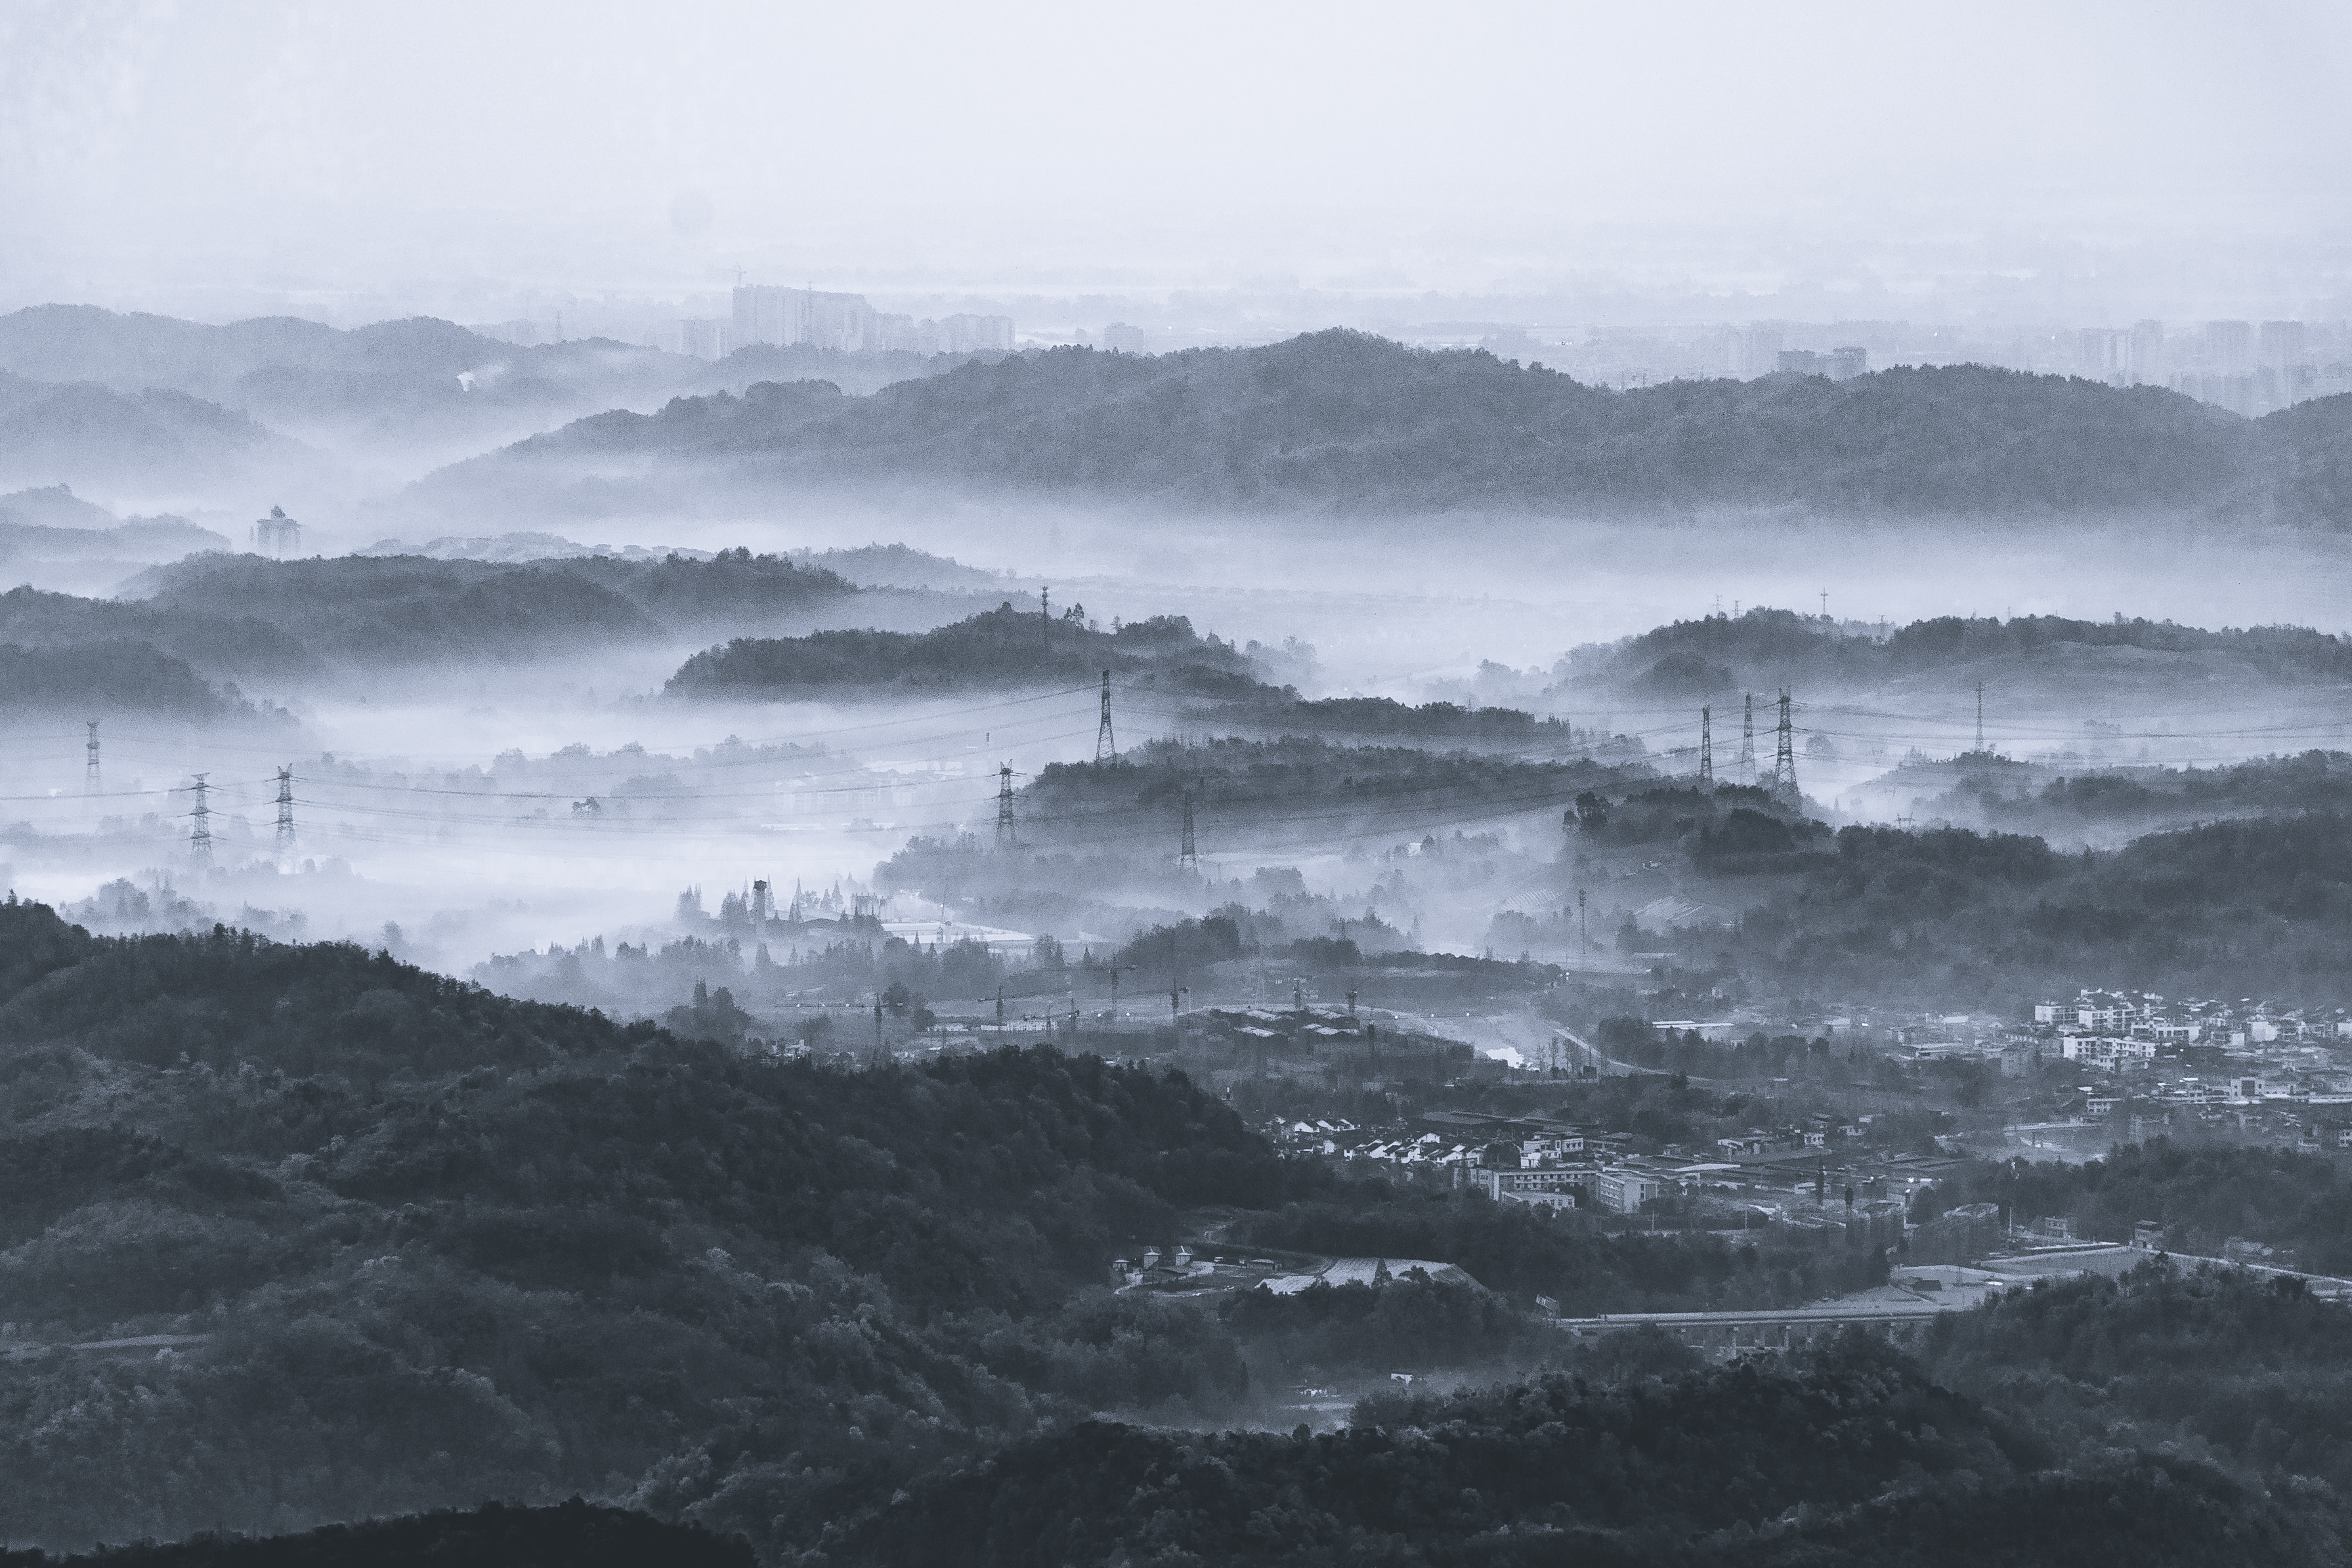 grayscale photo of mountain with fogs